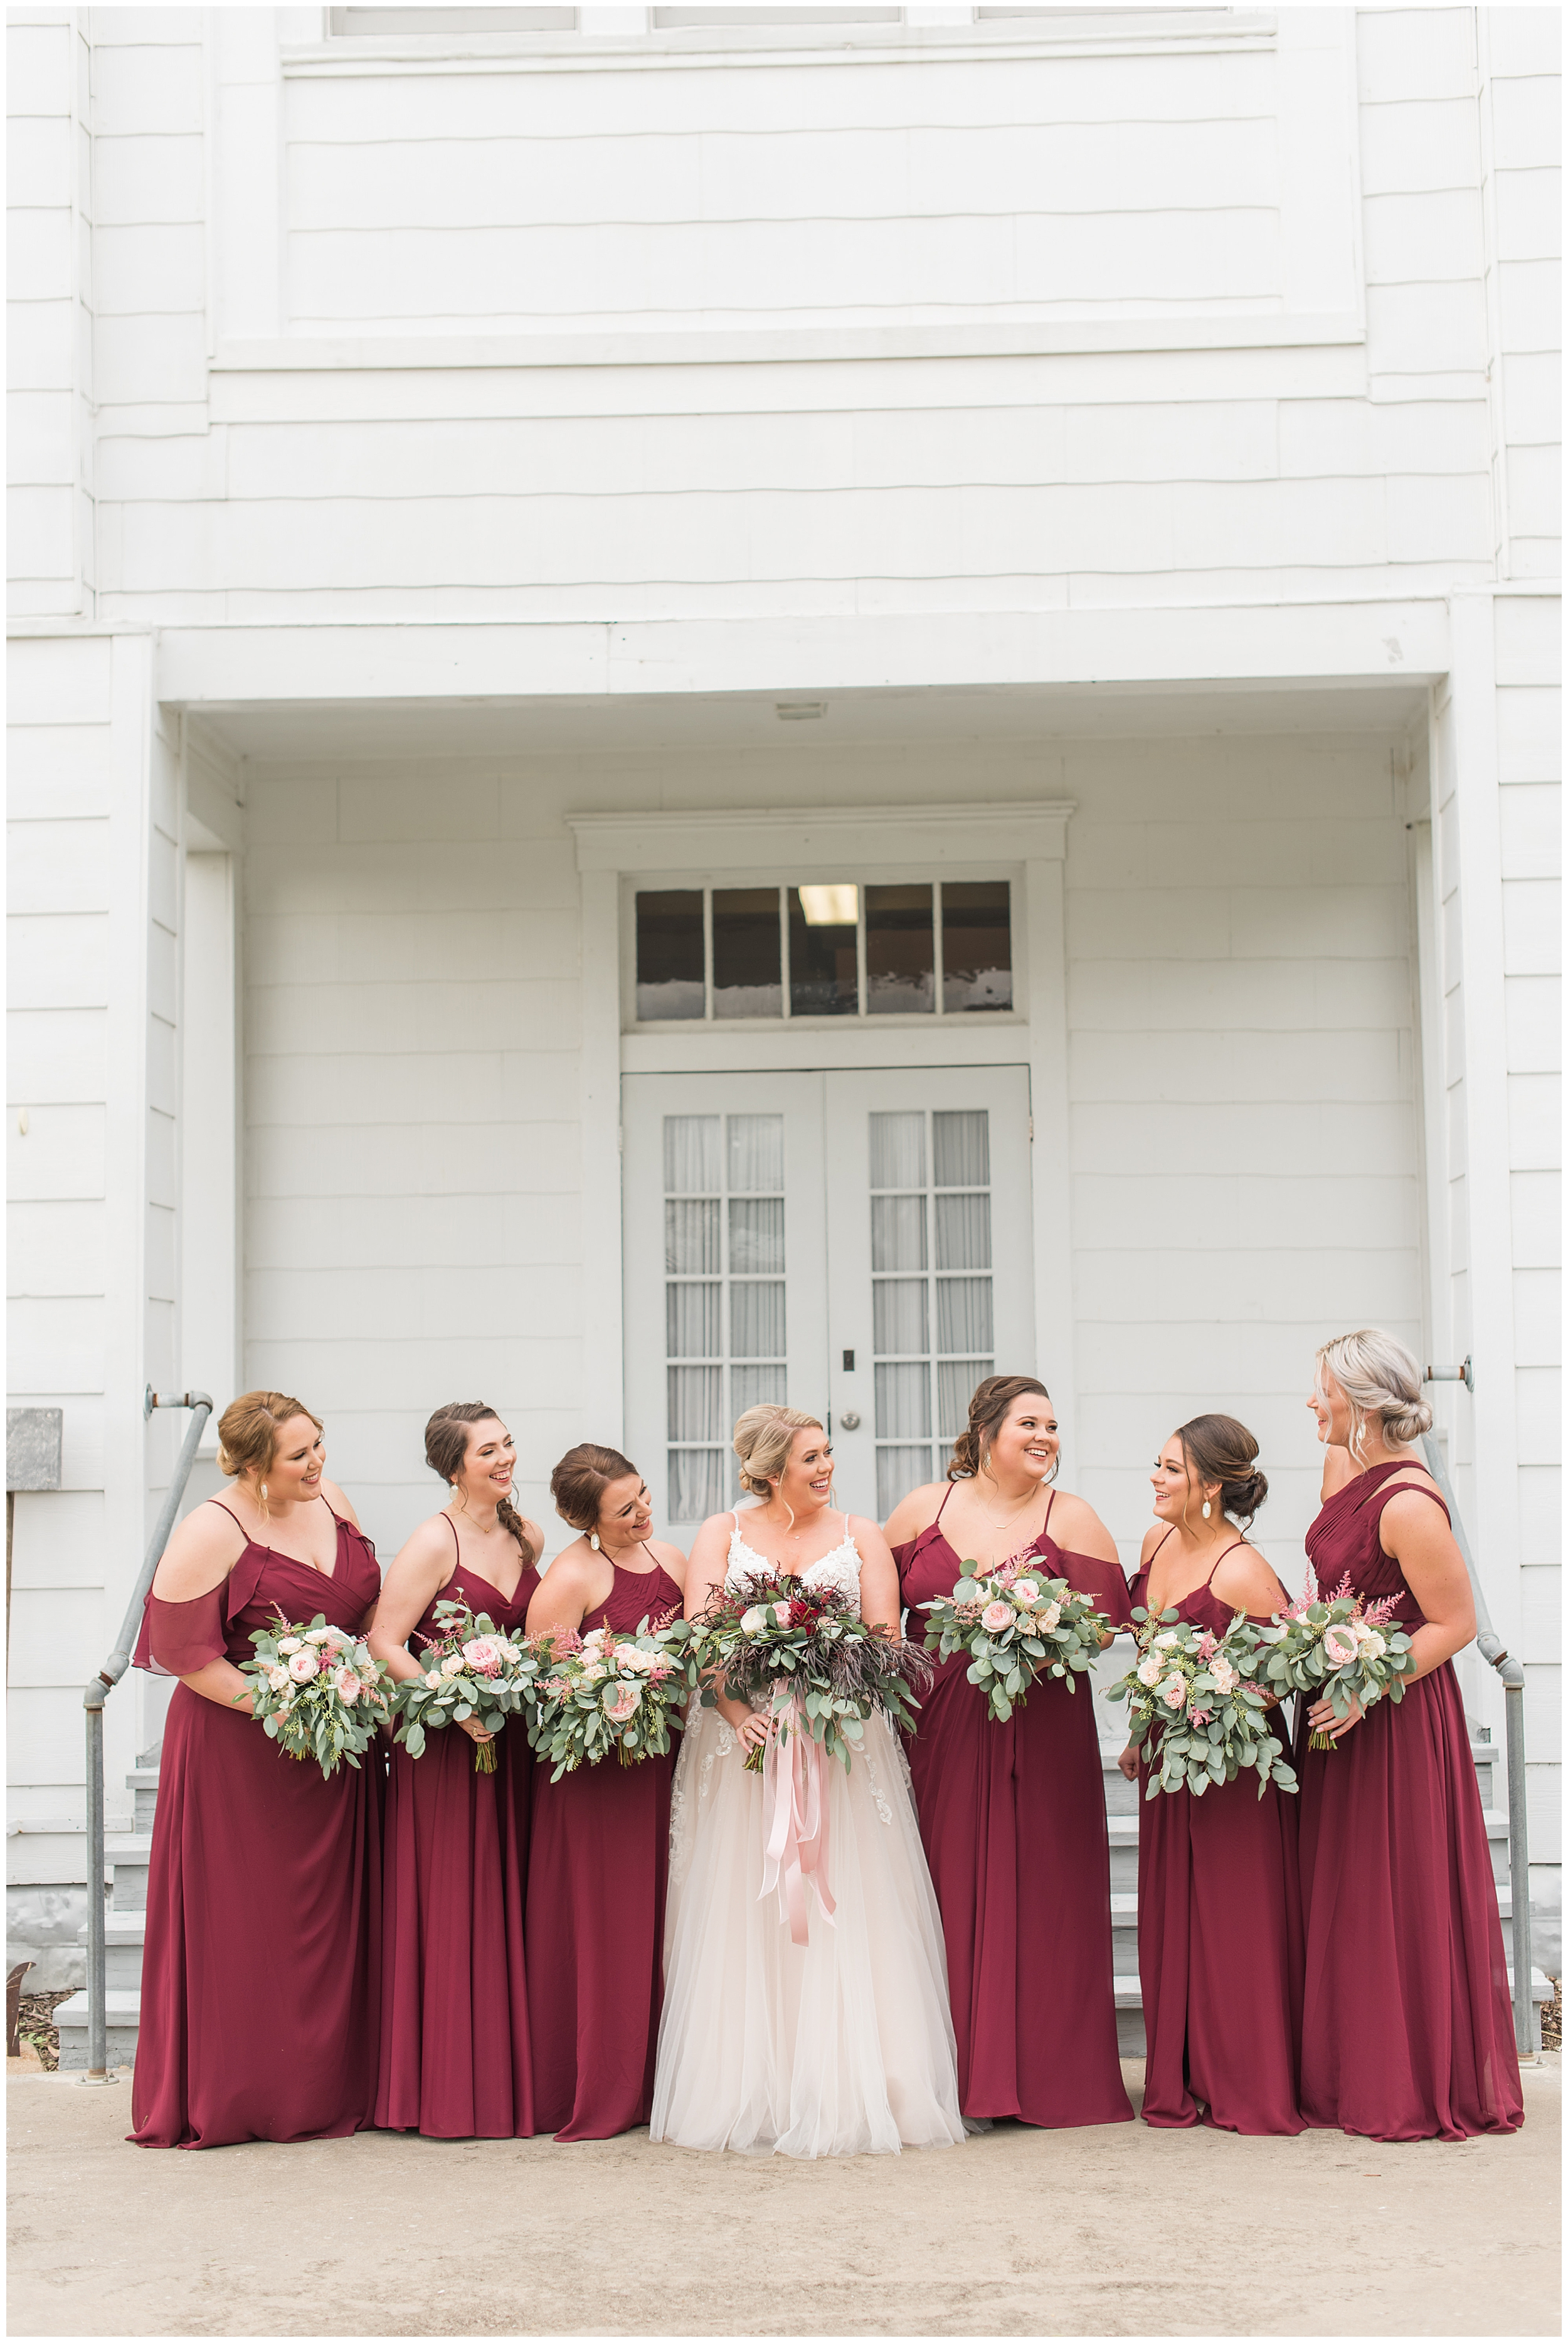 Lindsey & Michael Wedding | Church of the Visitation | Westphalia, TX | Katelyn Todd Photography | Texas Wedding Photographer